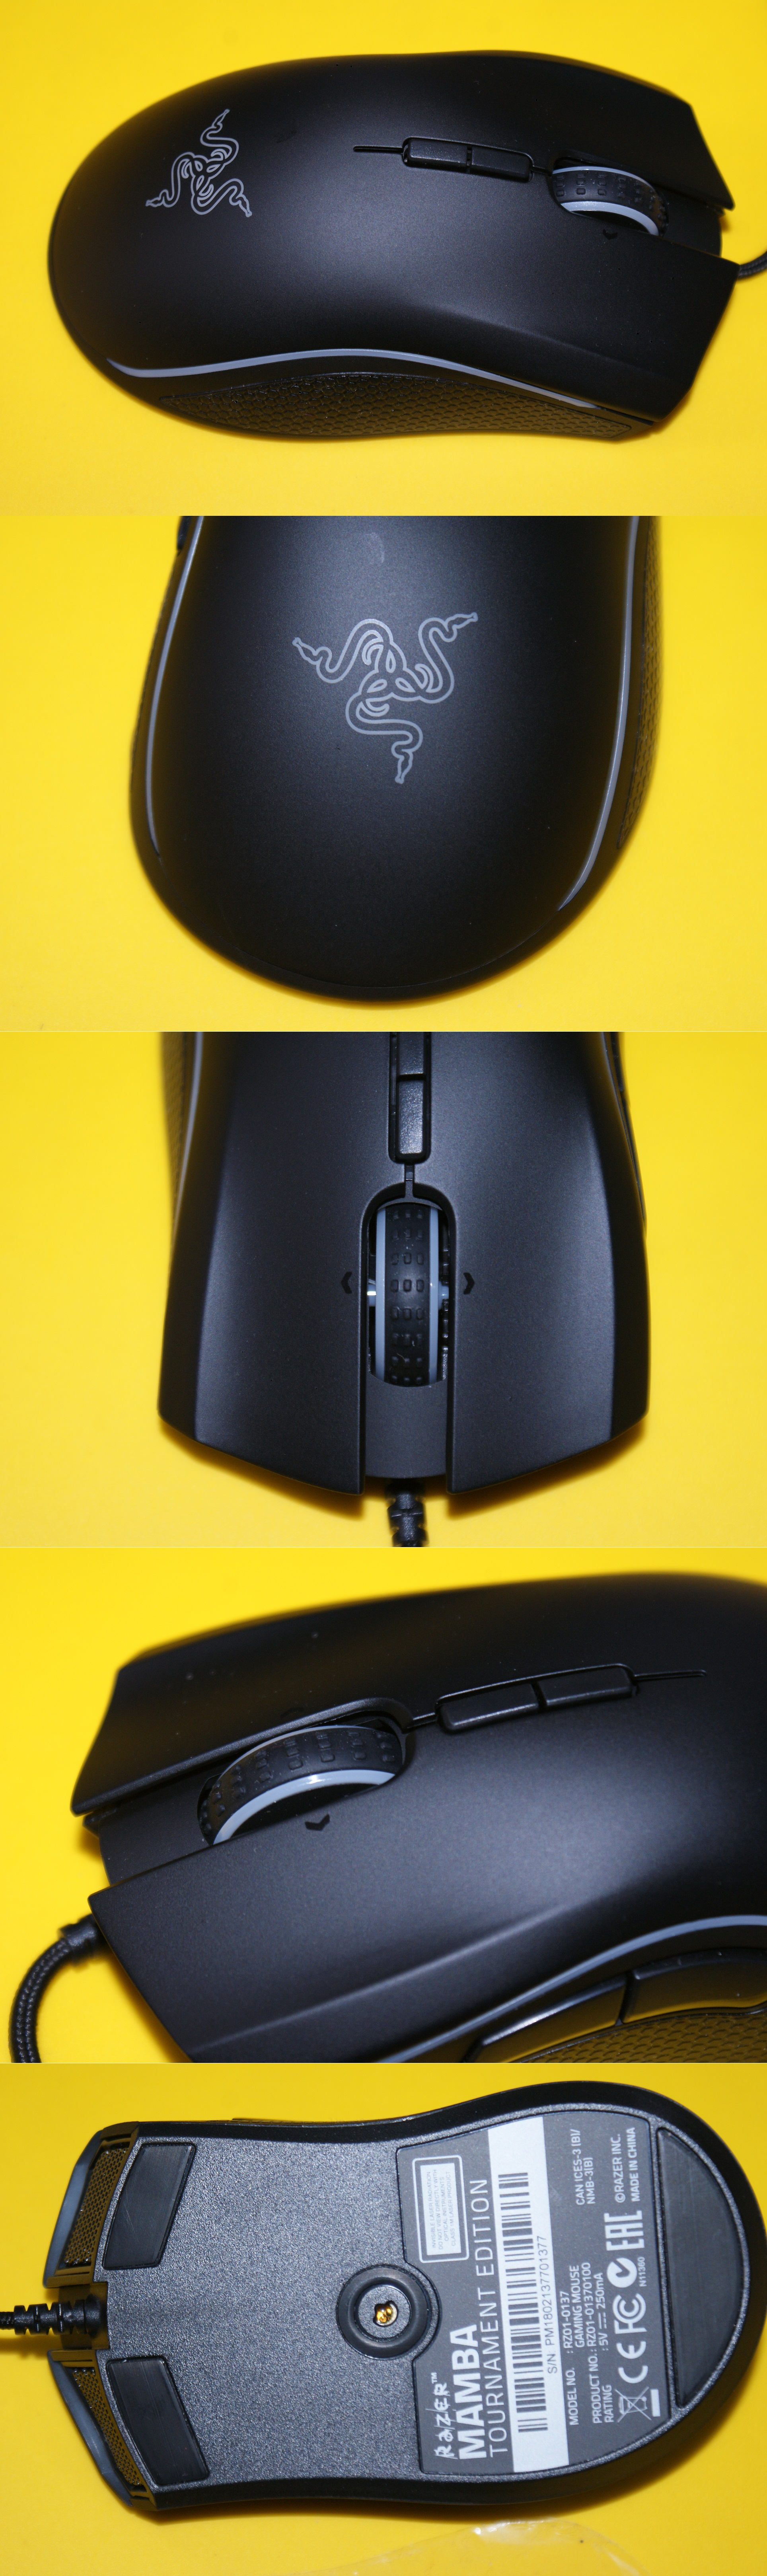 Problems with the mouse Bloody R8A 13